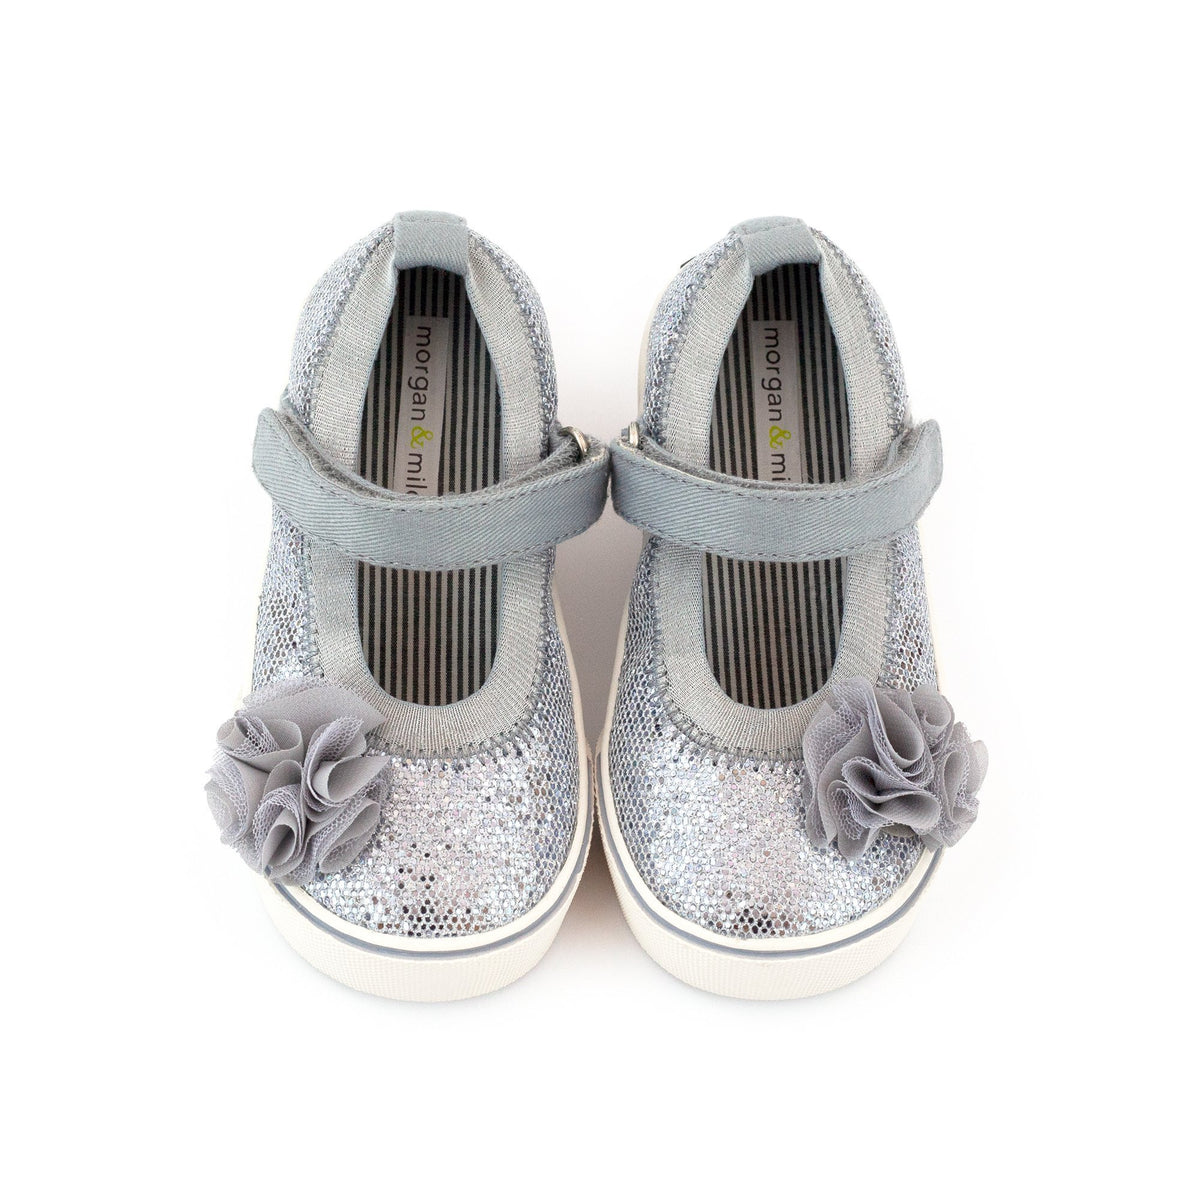 Zutano Shoe Dazzle Mary Jane Girls Shoe - Disco Silver